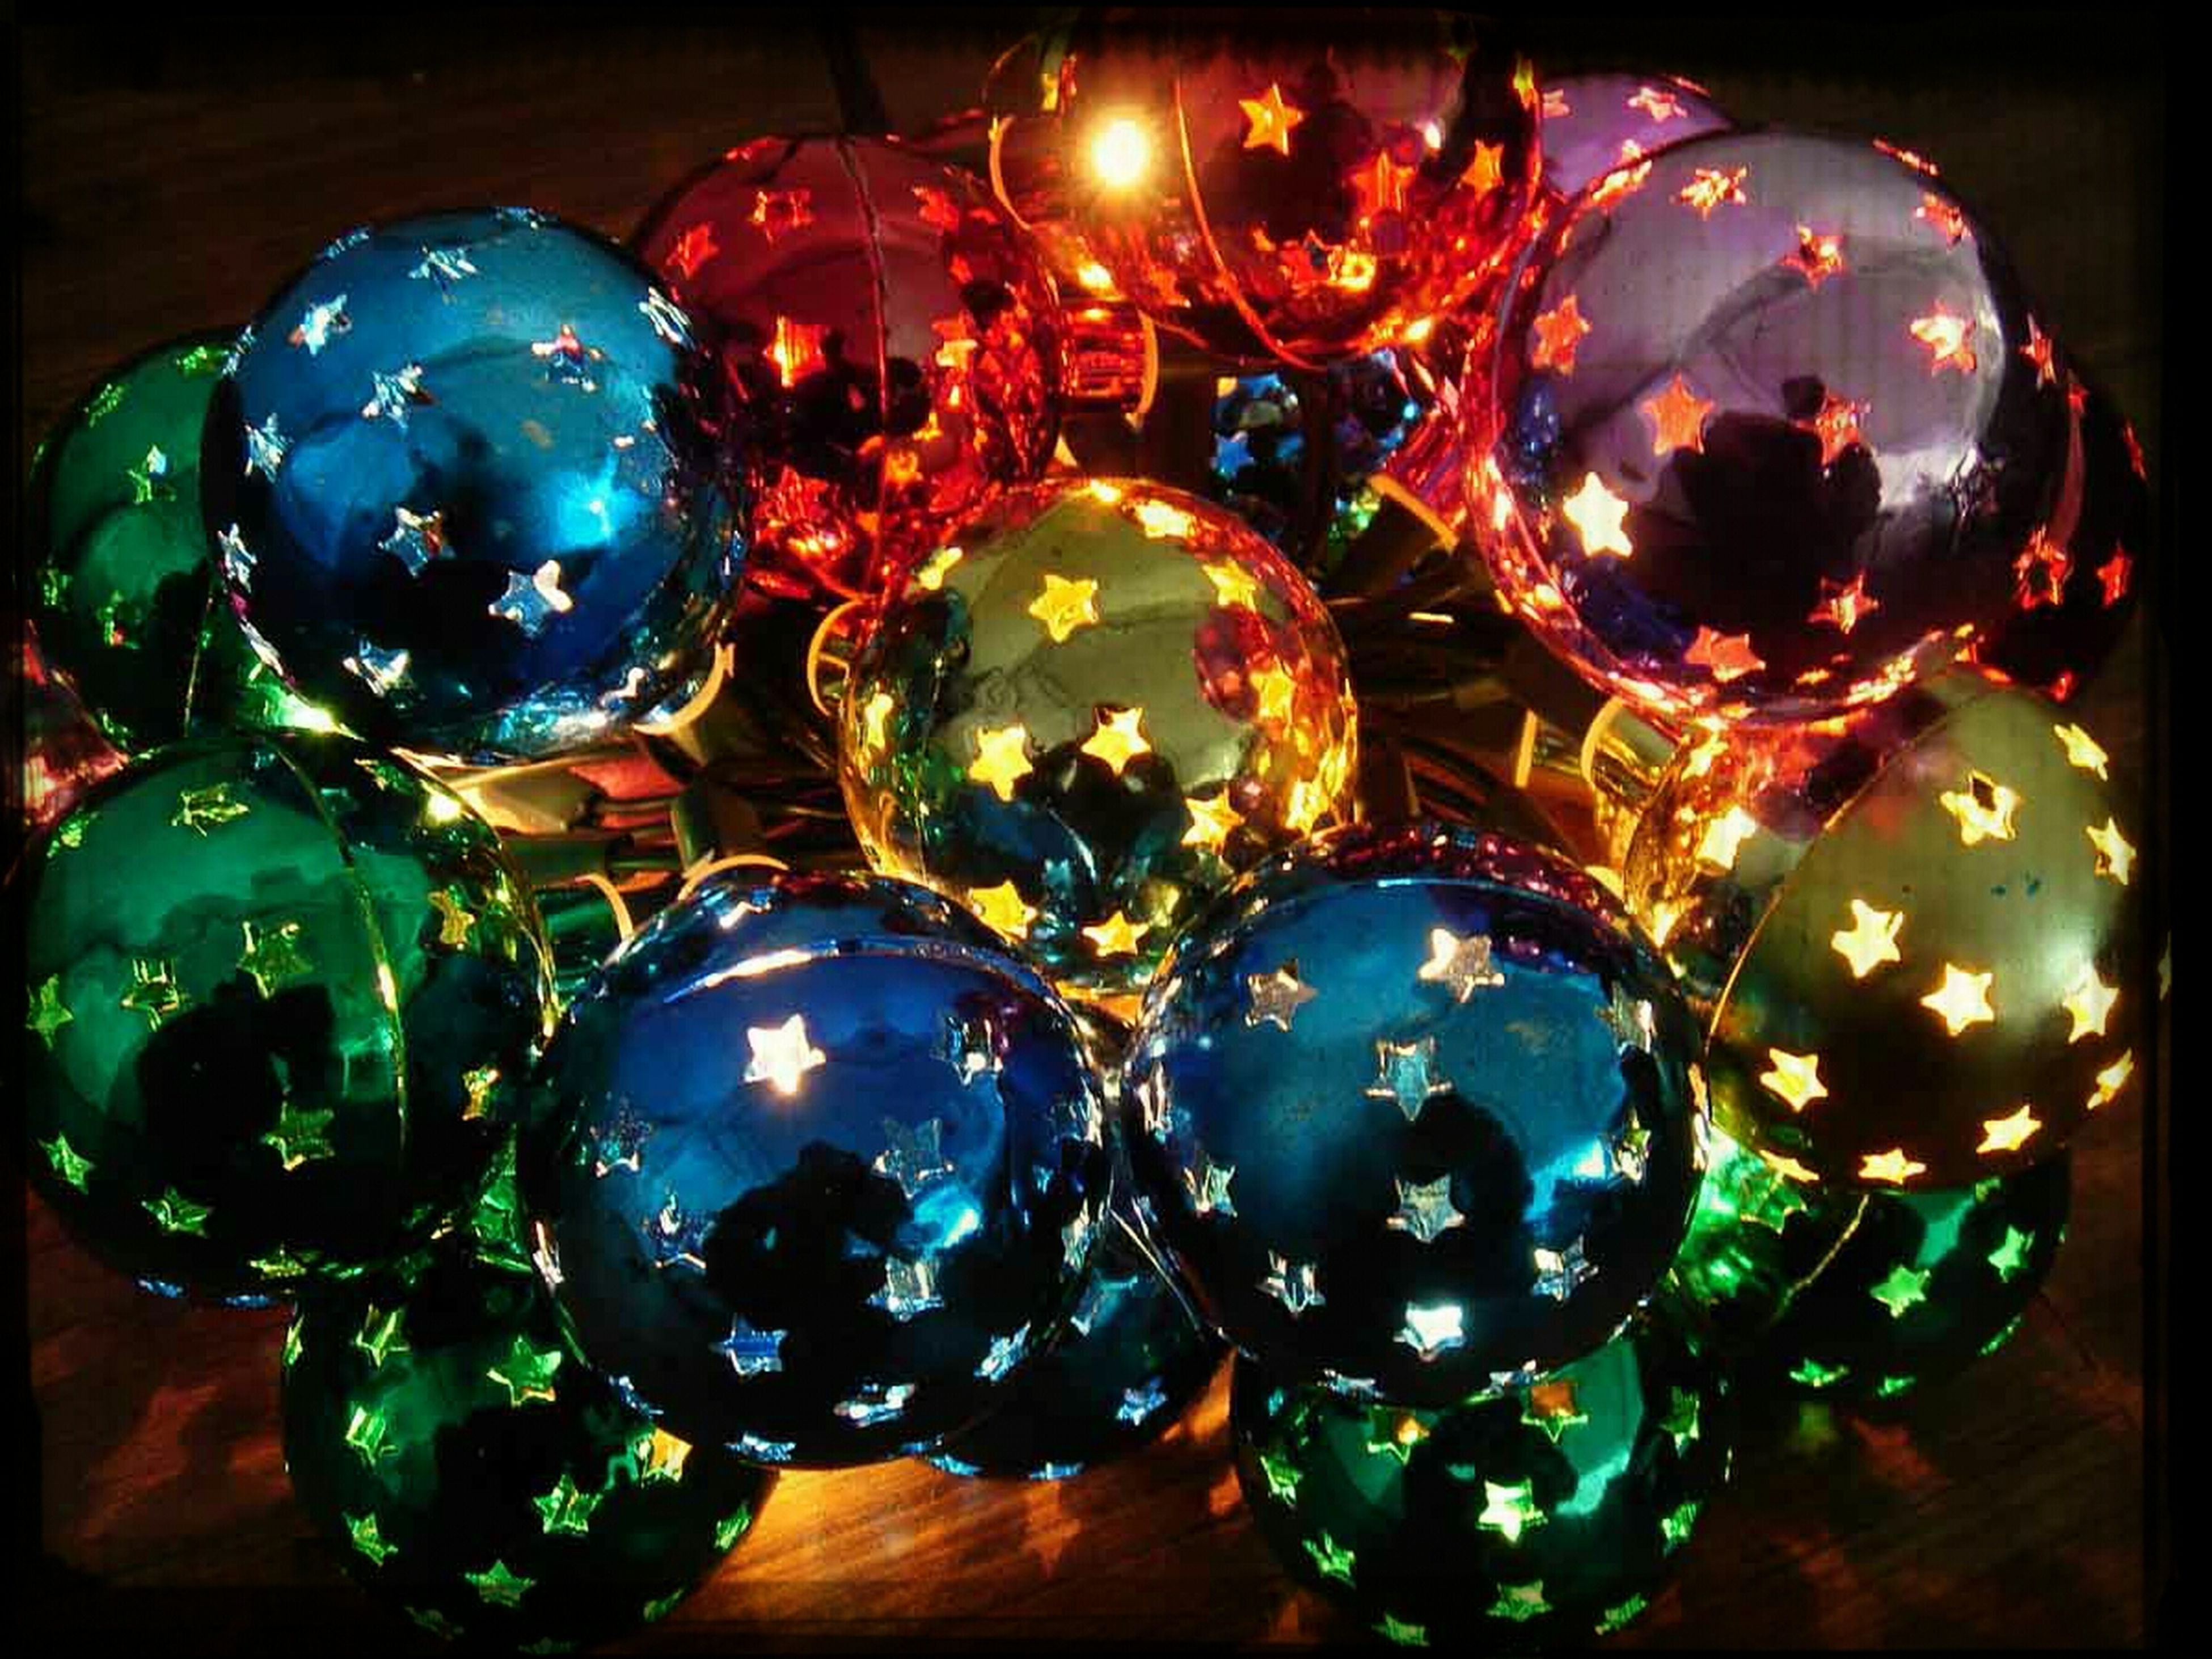 indoors, decoration, celebration, multi colored, illuminated, christmas, sphere, table, still life, christmas decoration, close-up, tradition, circle, decor, christmas ornament, hanging, glass - material, no people, christmas tree, lighting equipment